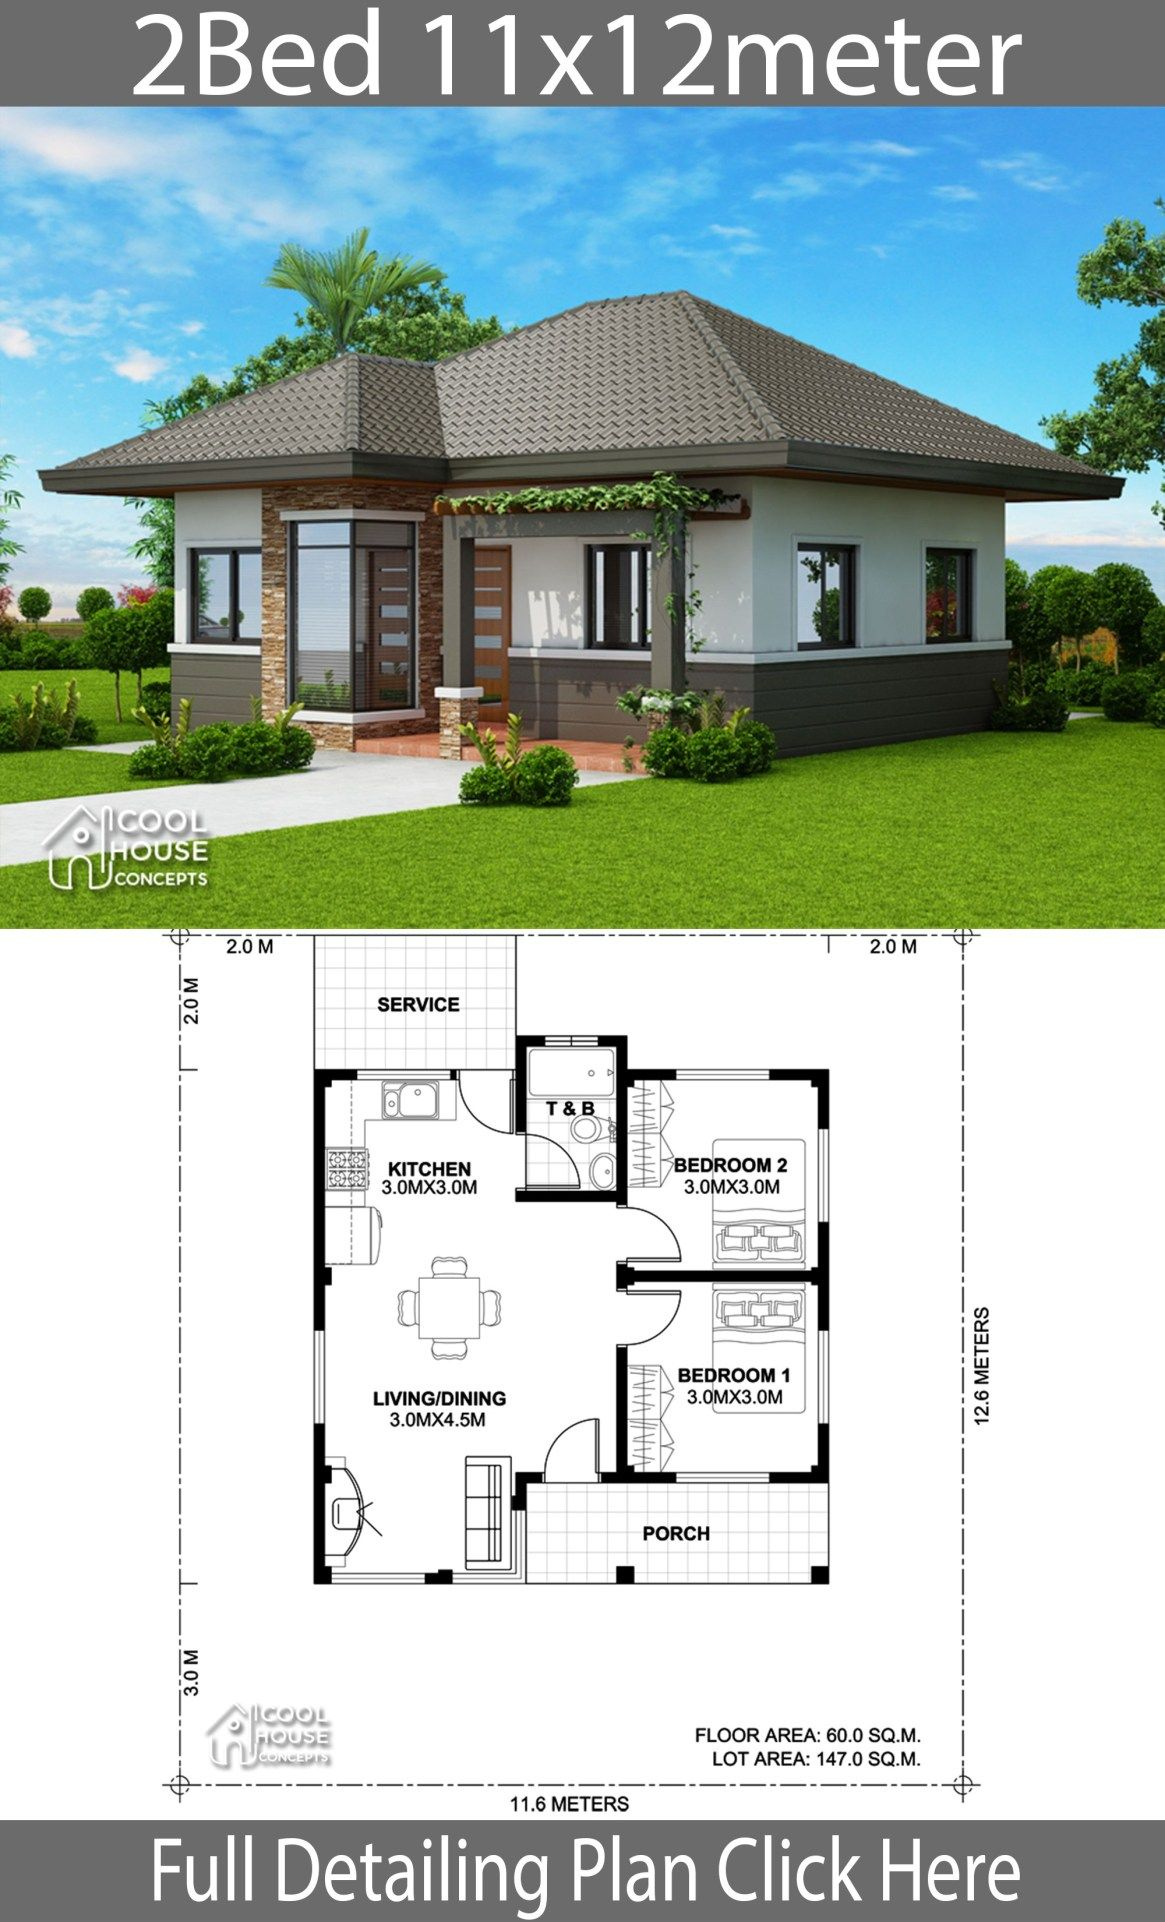 Home Design Plan 11x12m With 2 Bedrooms With Images Modern